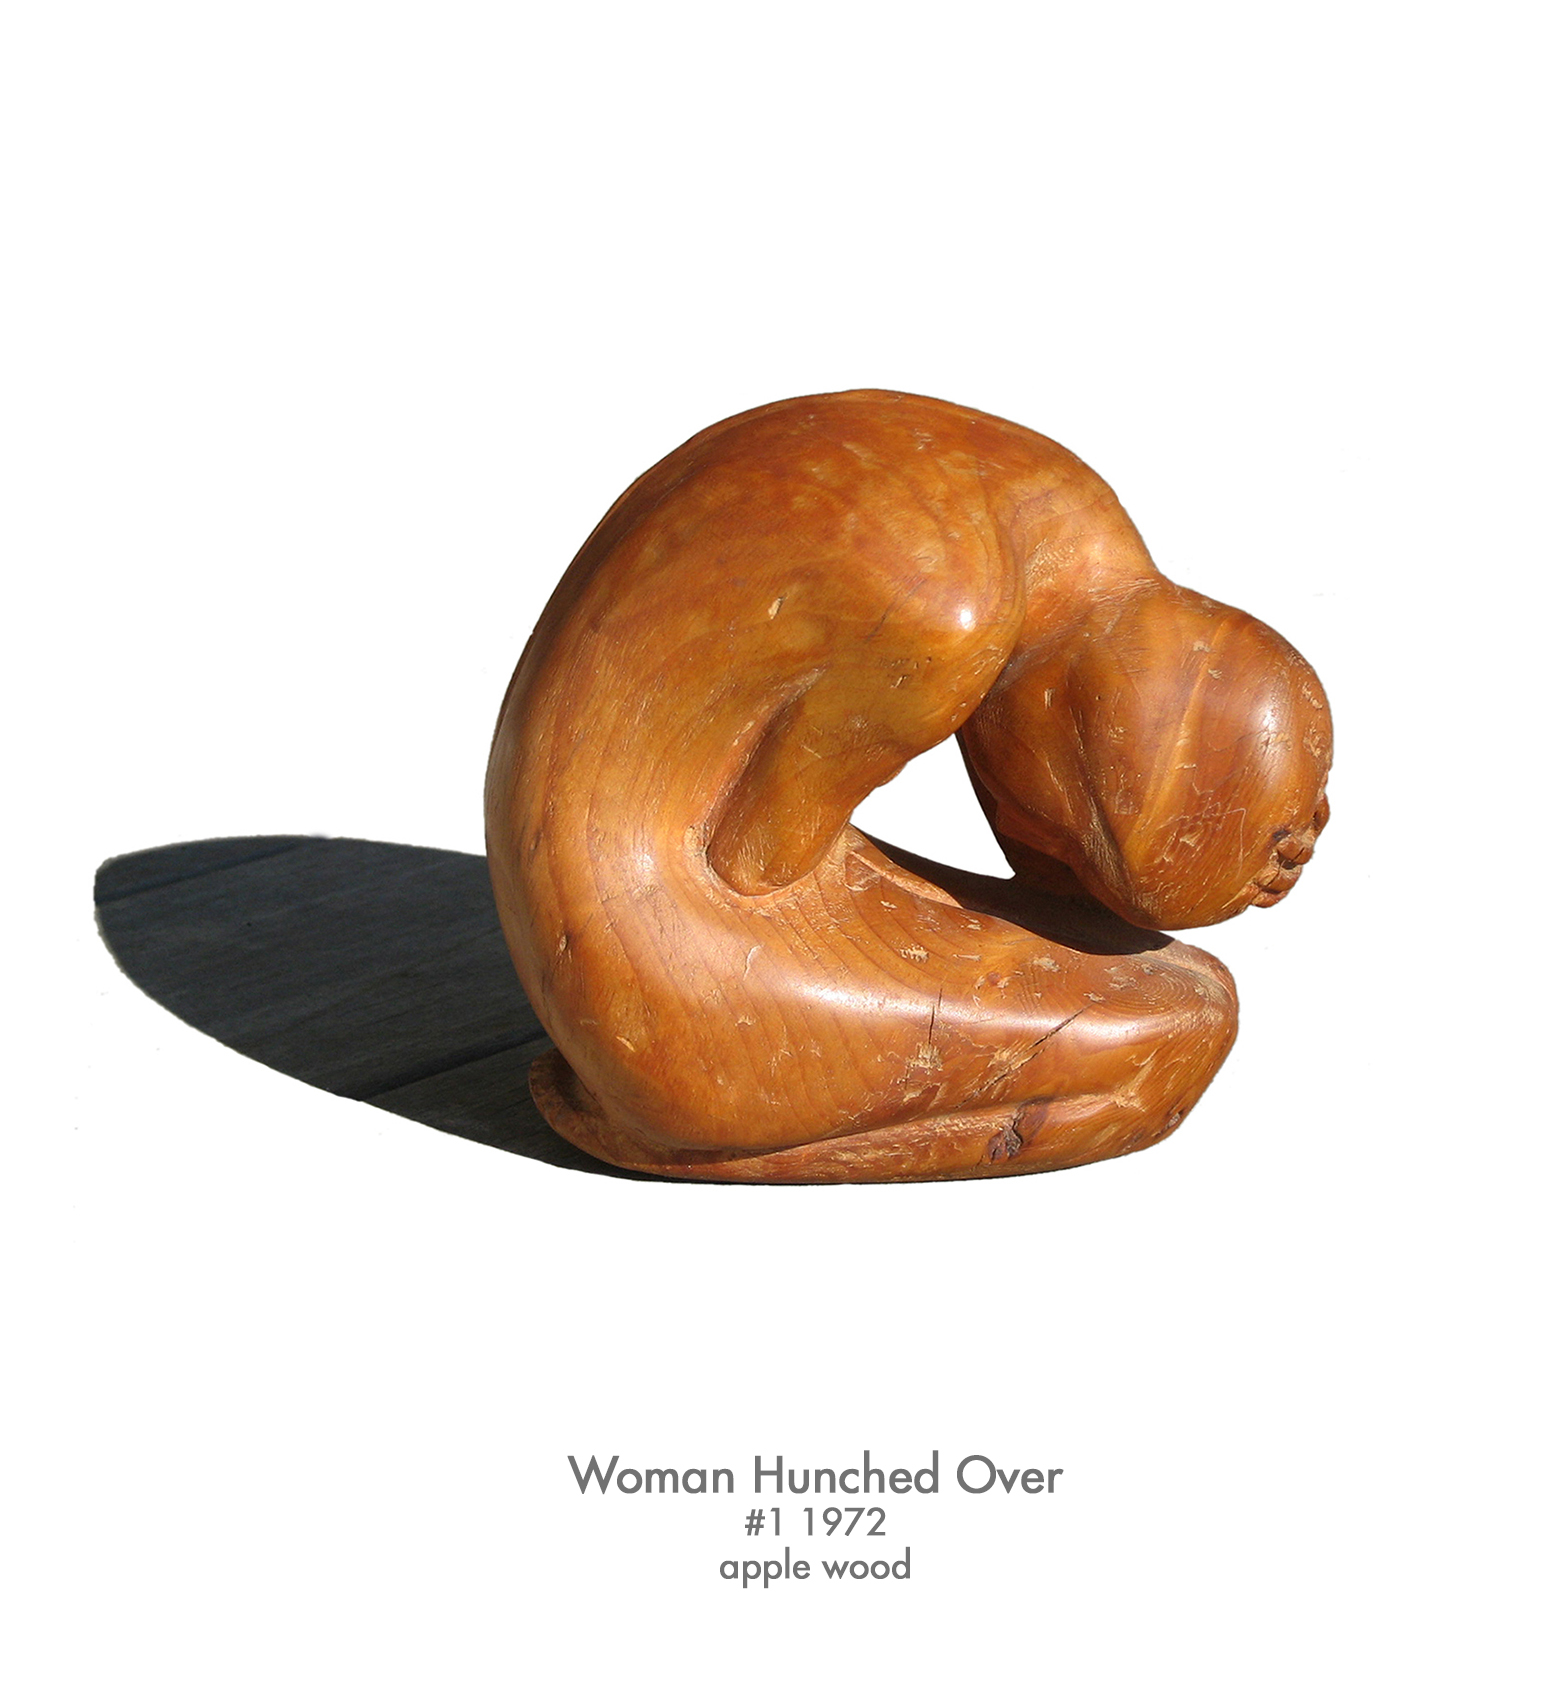 Woman Hunched Over